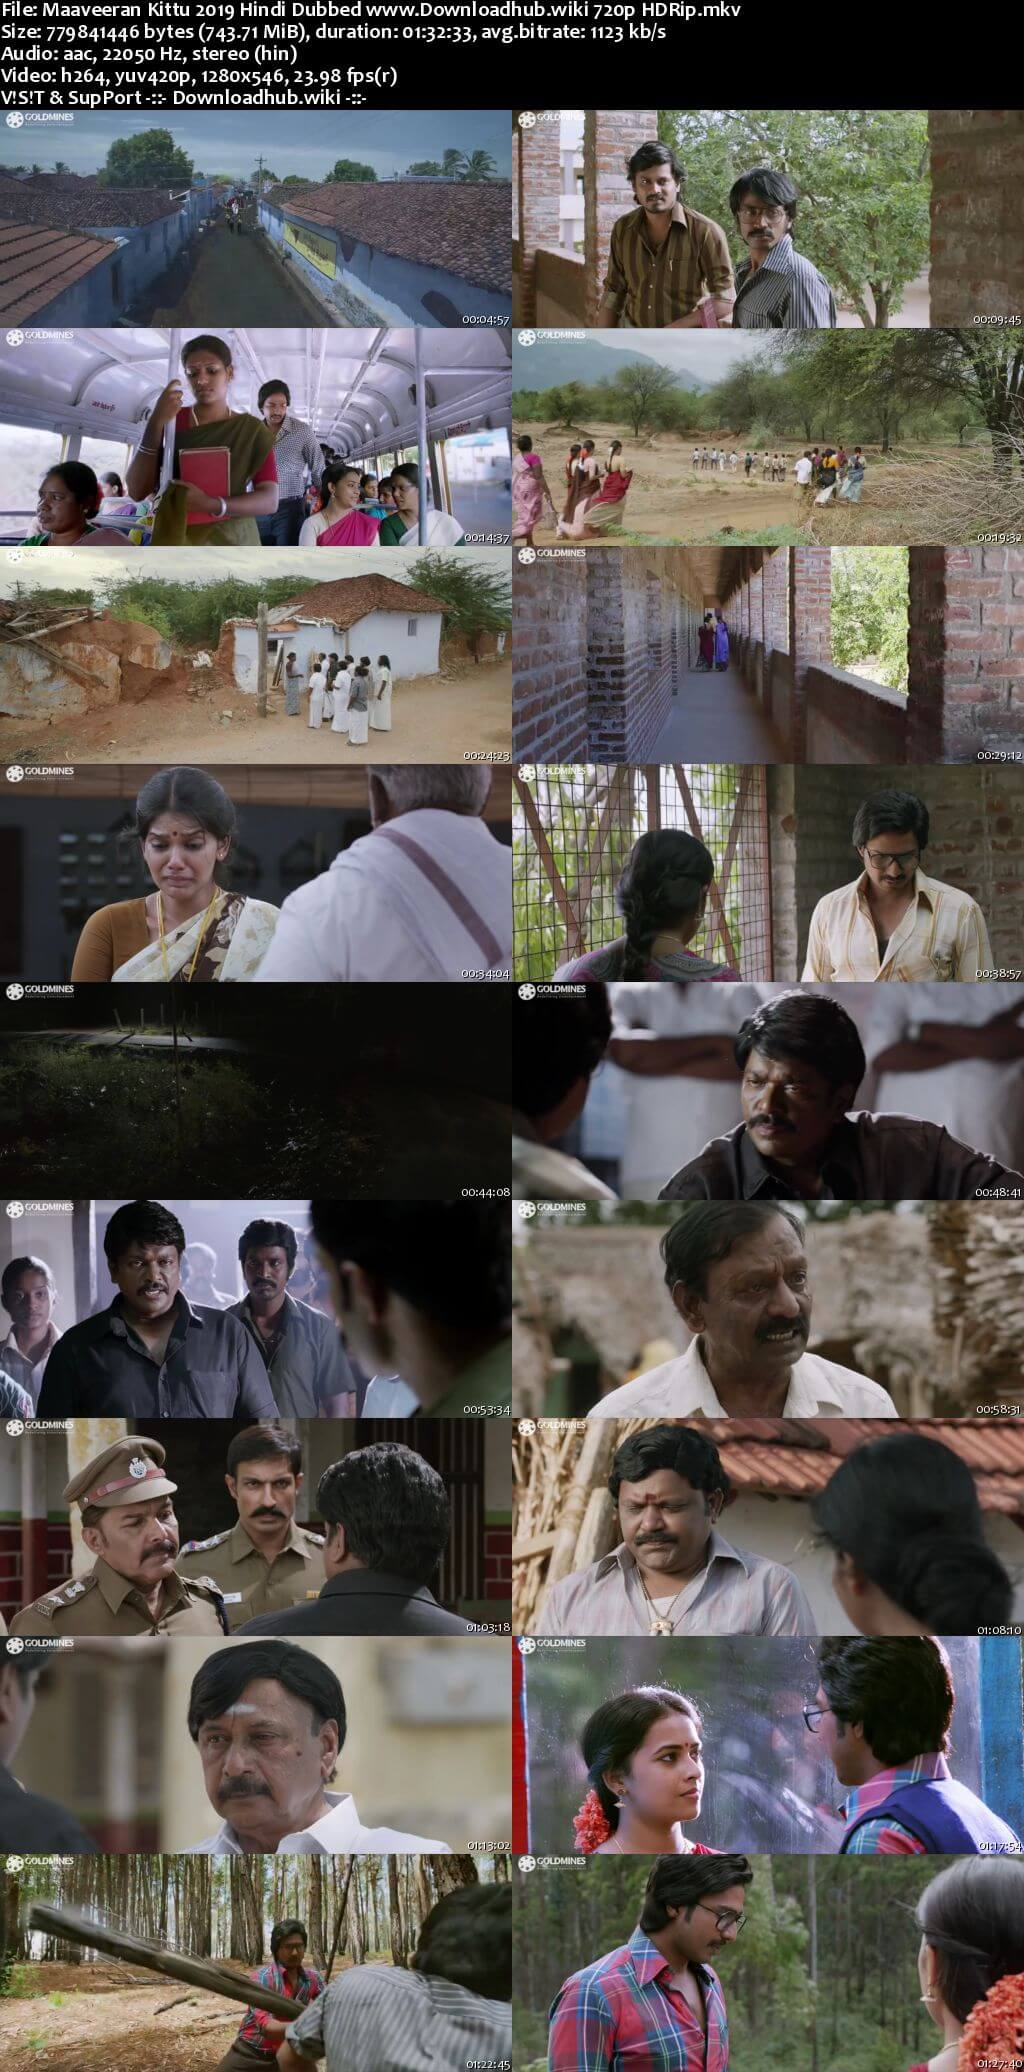 Maaveeran Kittu 2019 Hindi Dubbed 720p HDRip x264